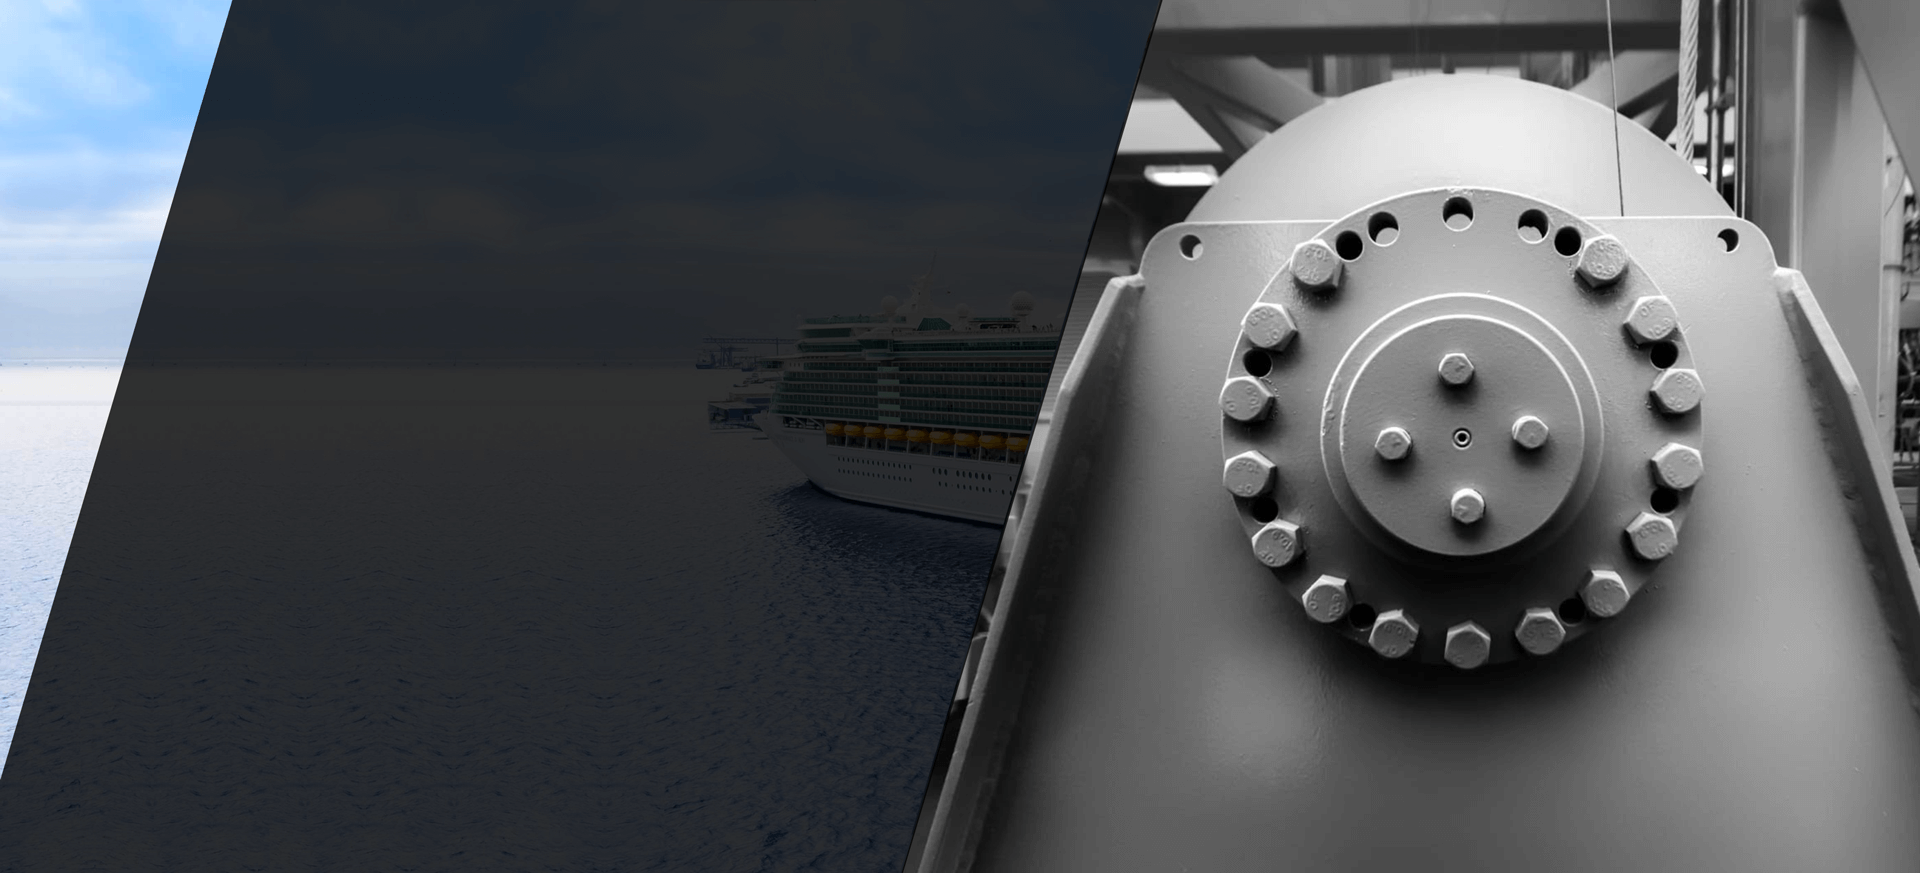 Navim Group Valves Remote Control System on cruise vessels and Ferries